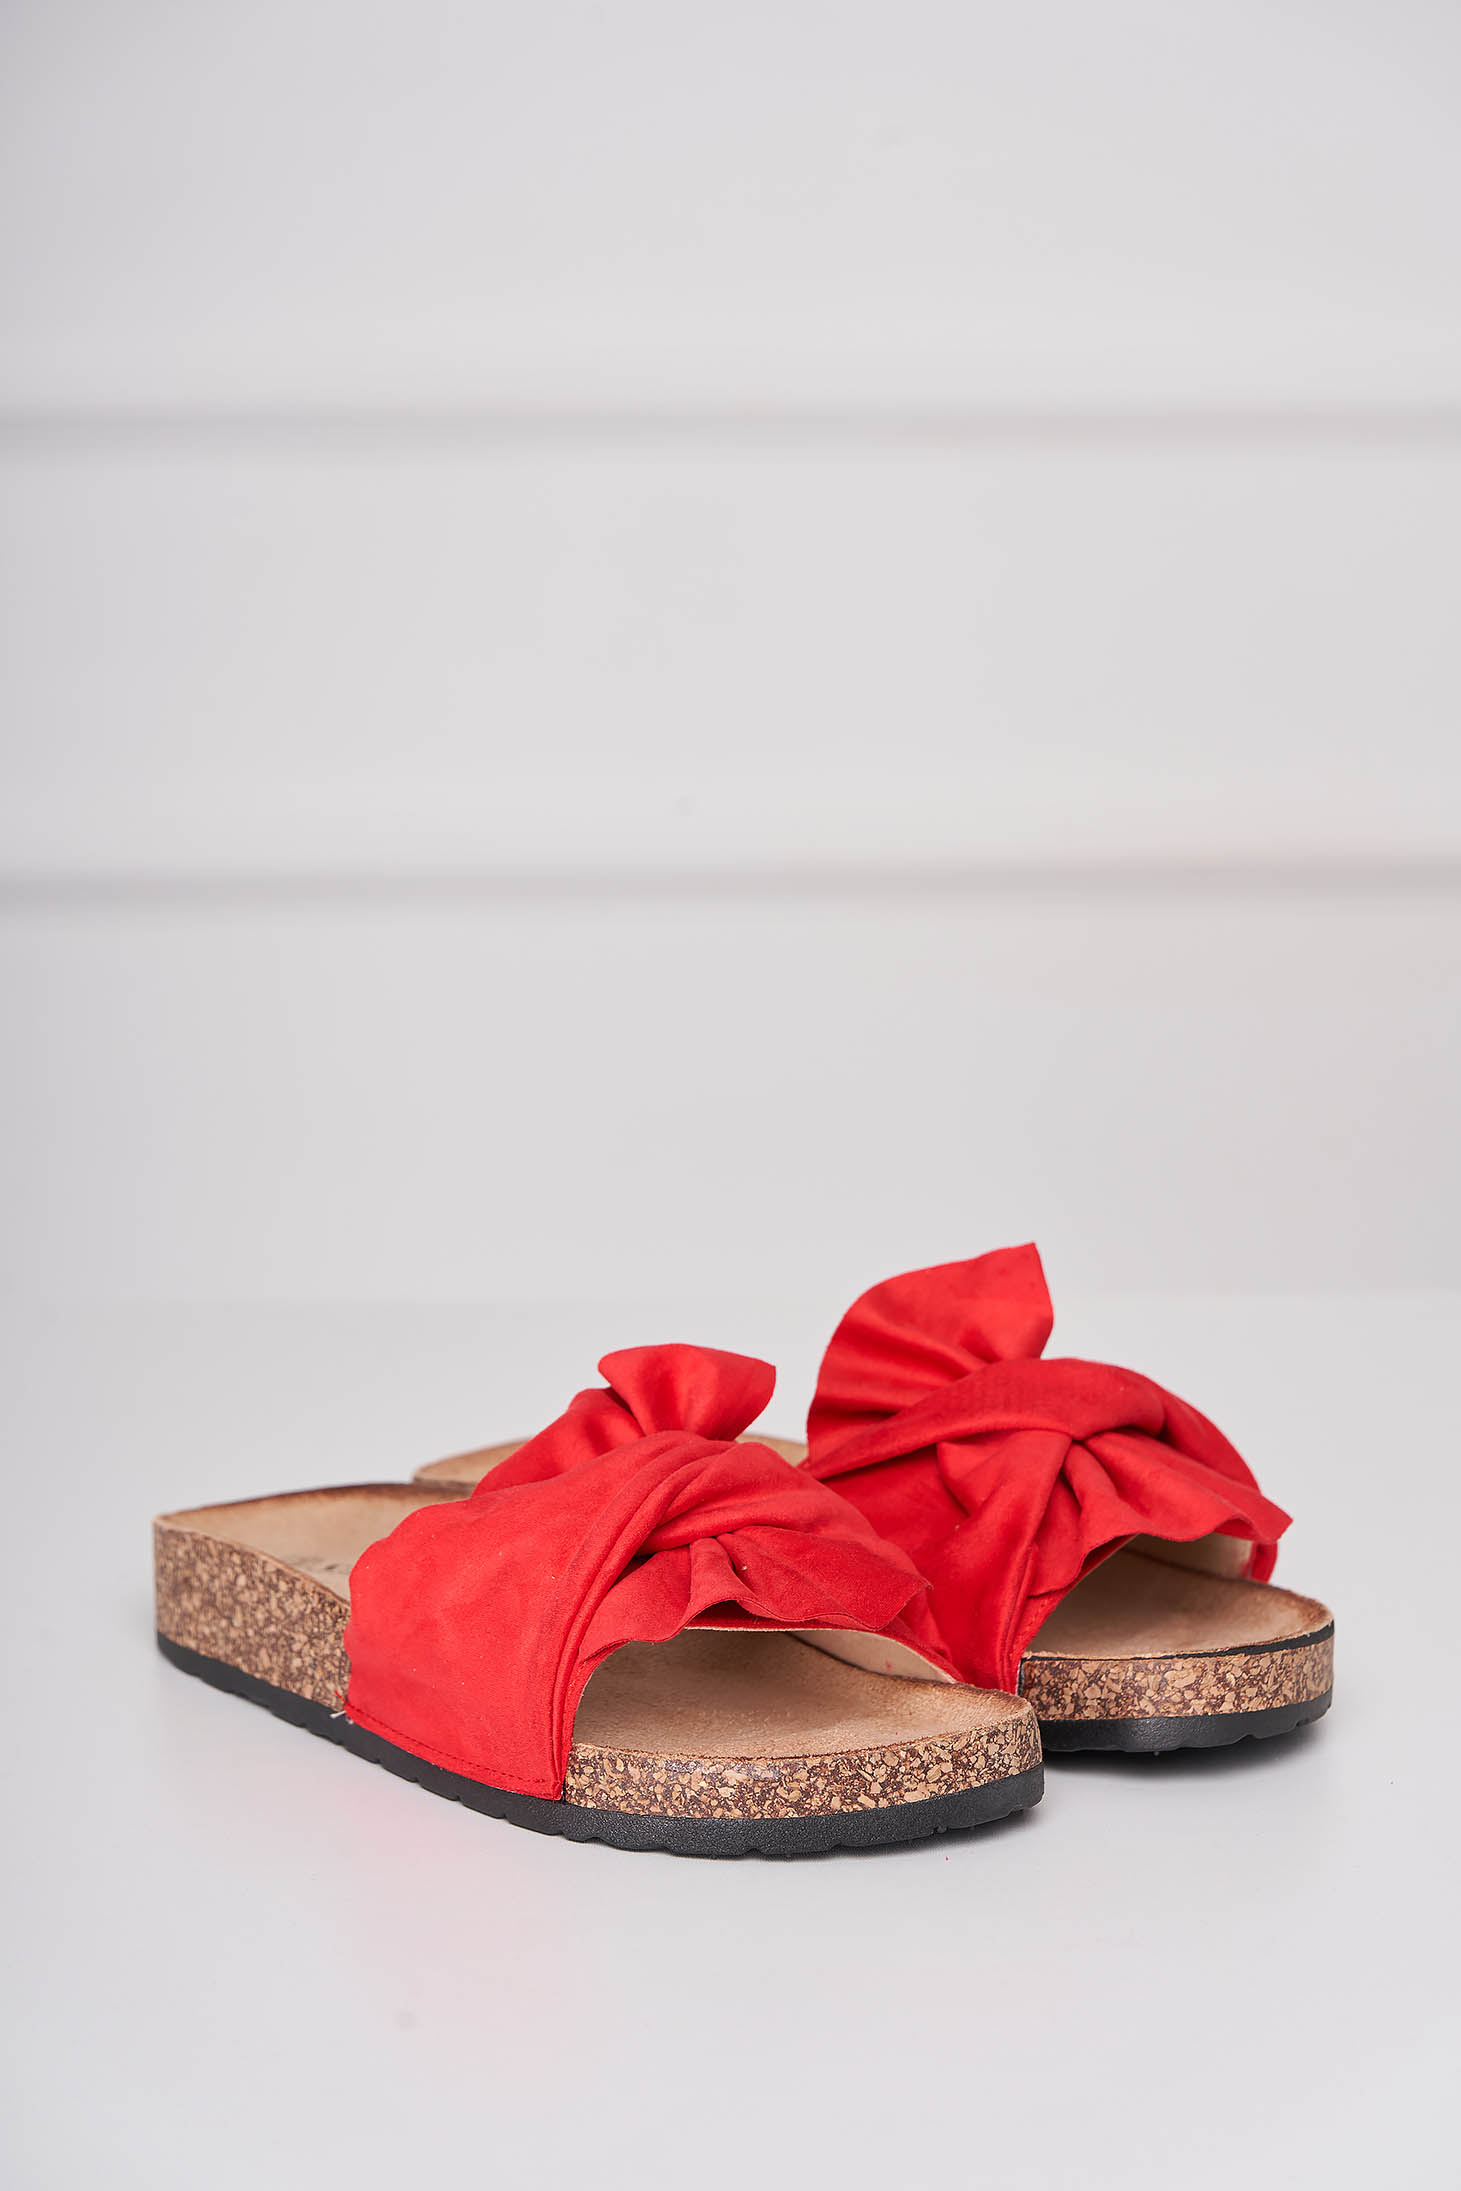 Casual red slippers from velvet fabric low heel